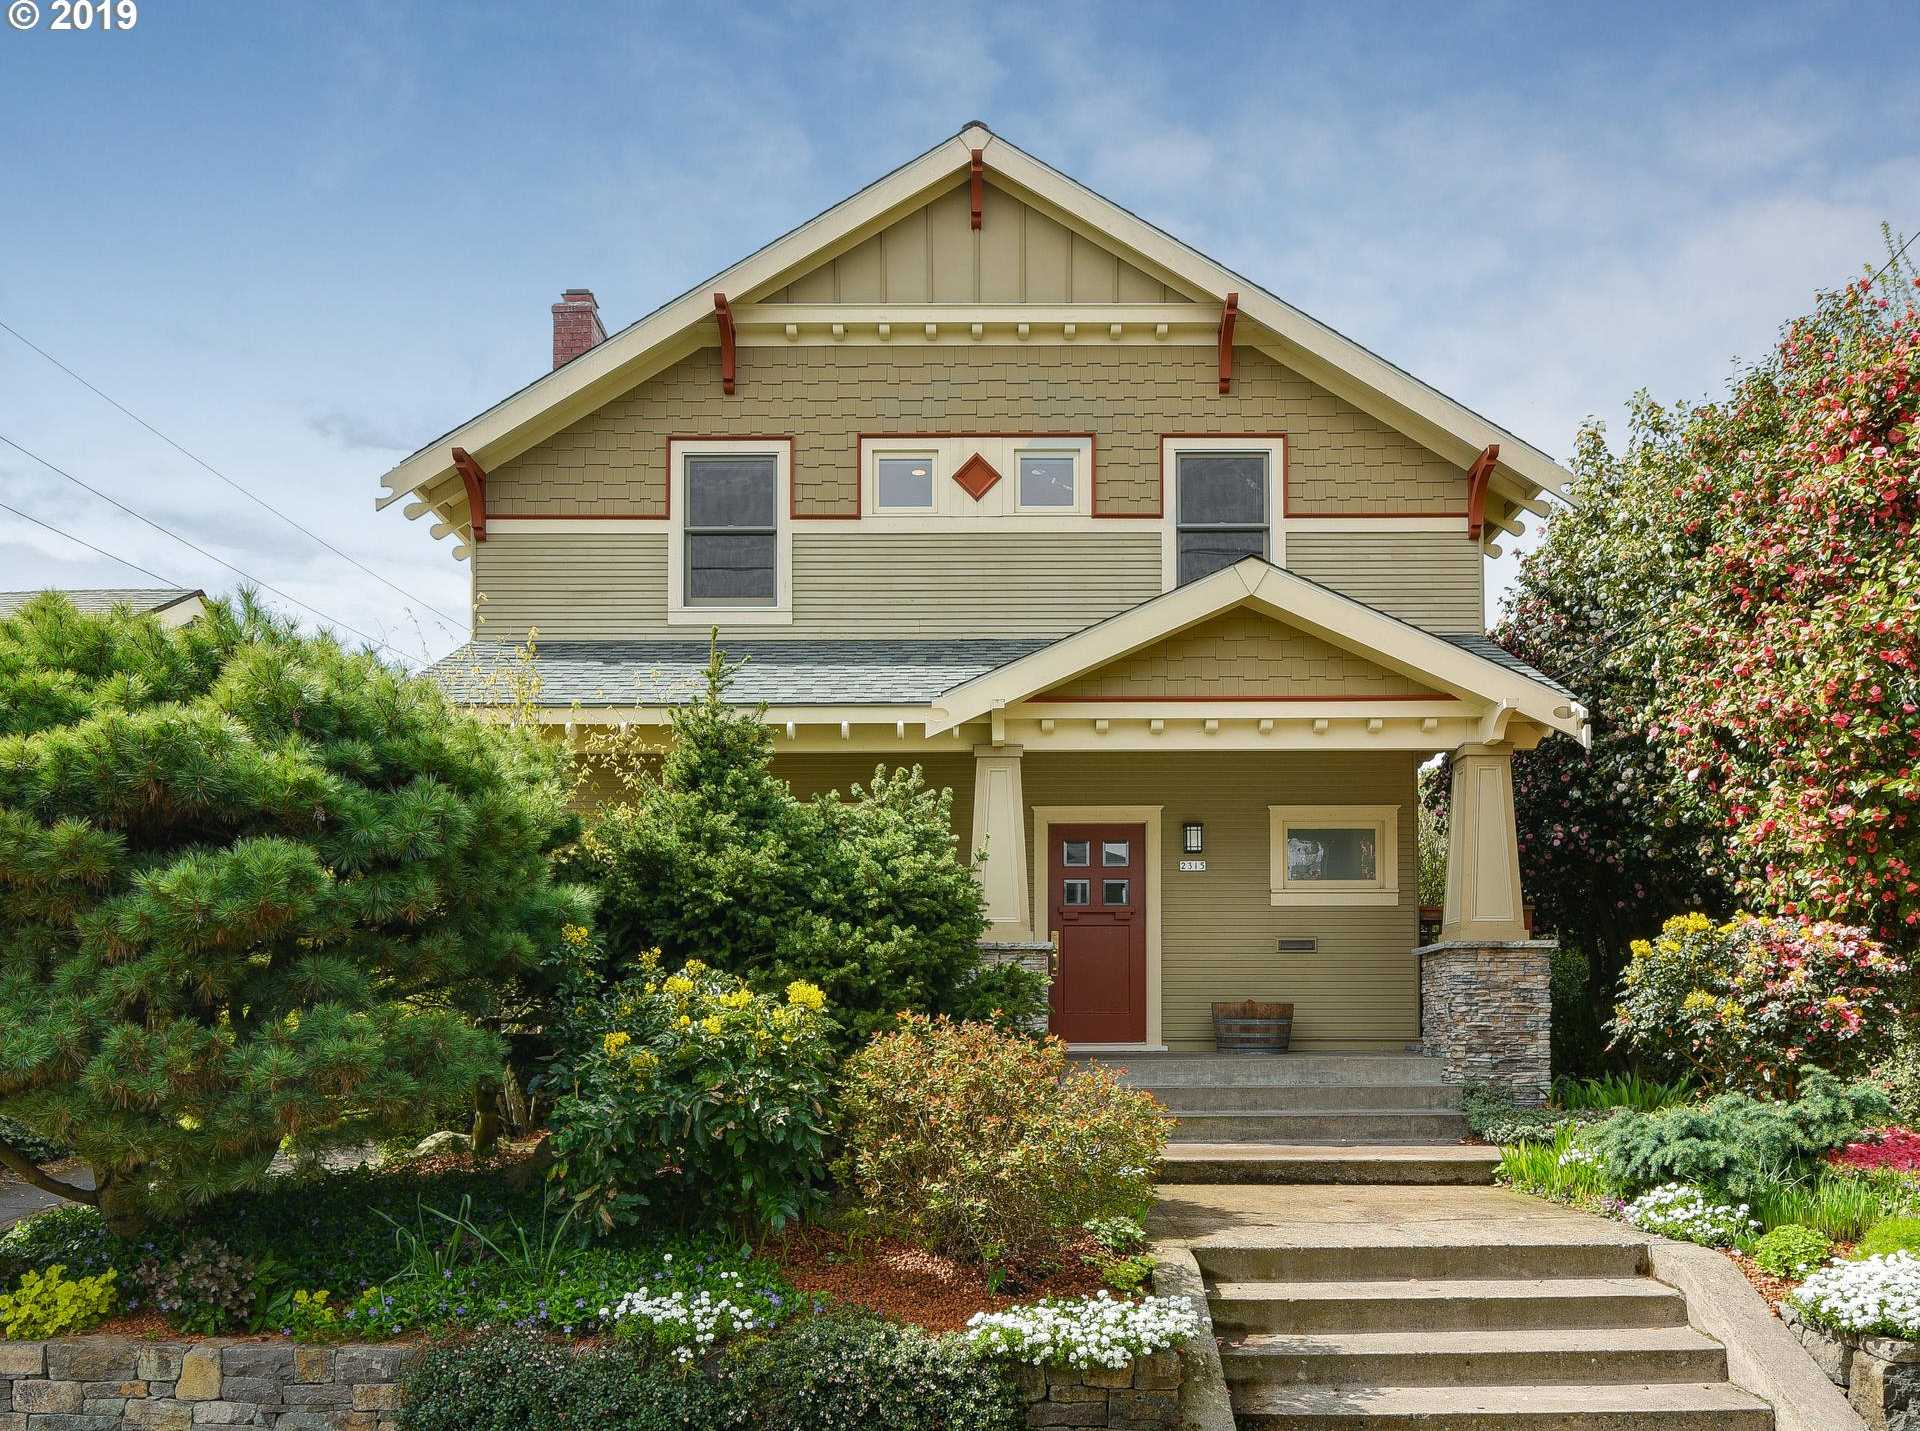 $1,100,000 - 4Br/3Ba -  for Sale in Grant Park / Hollywood, Portland